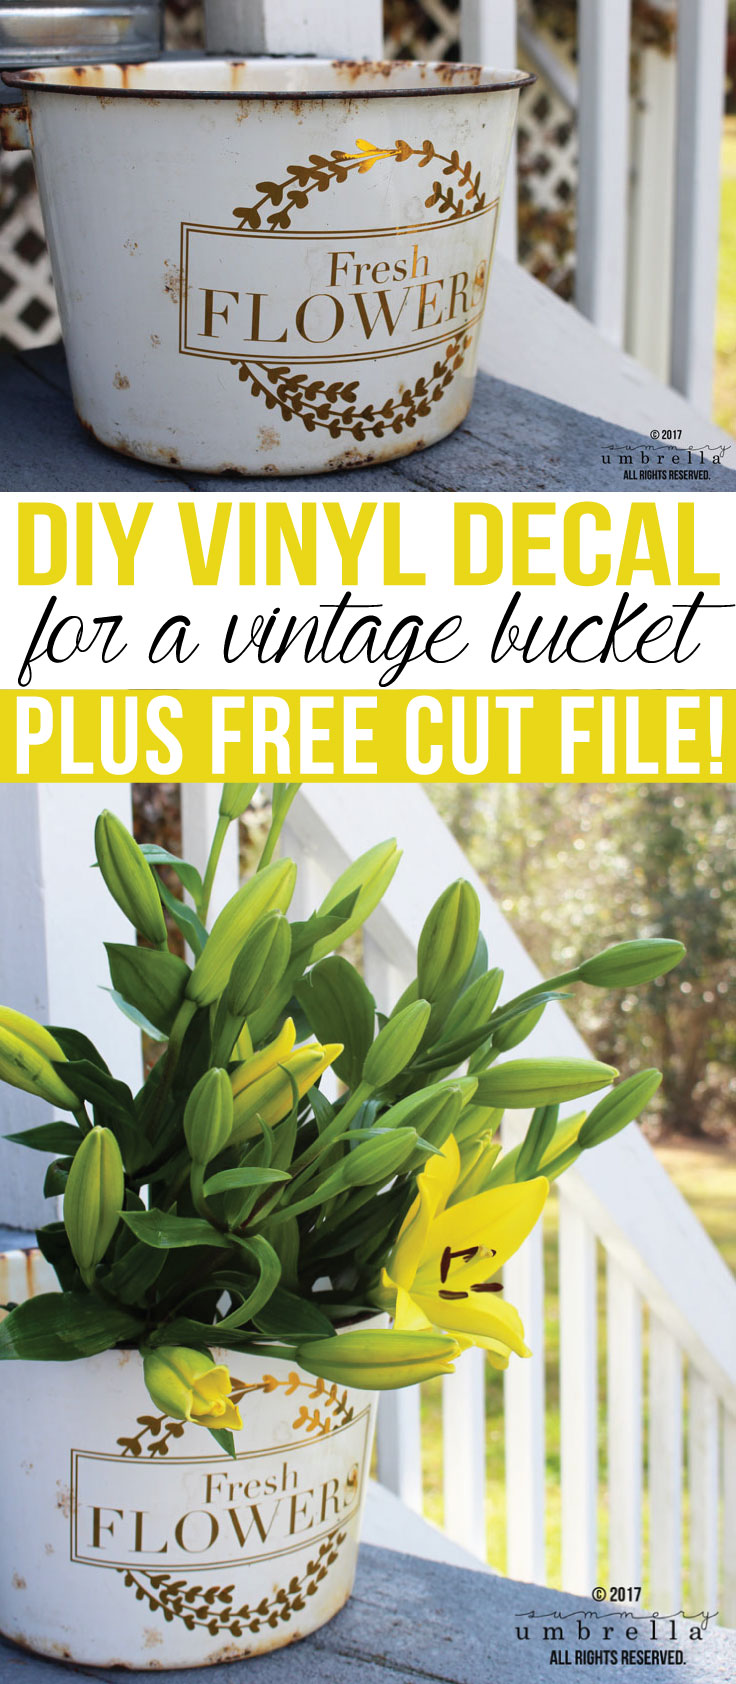 This DIY Vinyl Decal for a Vintage Bucket tutorial is so easy you're going to want to make one for all your friends & family! Plus, a free SVG Cut File too! It's so easy you'll have a DIY flower pot in no time at all. #svgfiles #silhouette #thesummeryumbrella